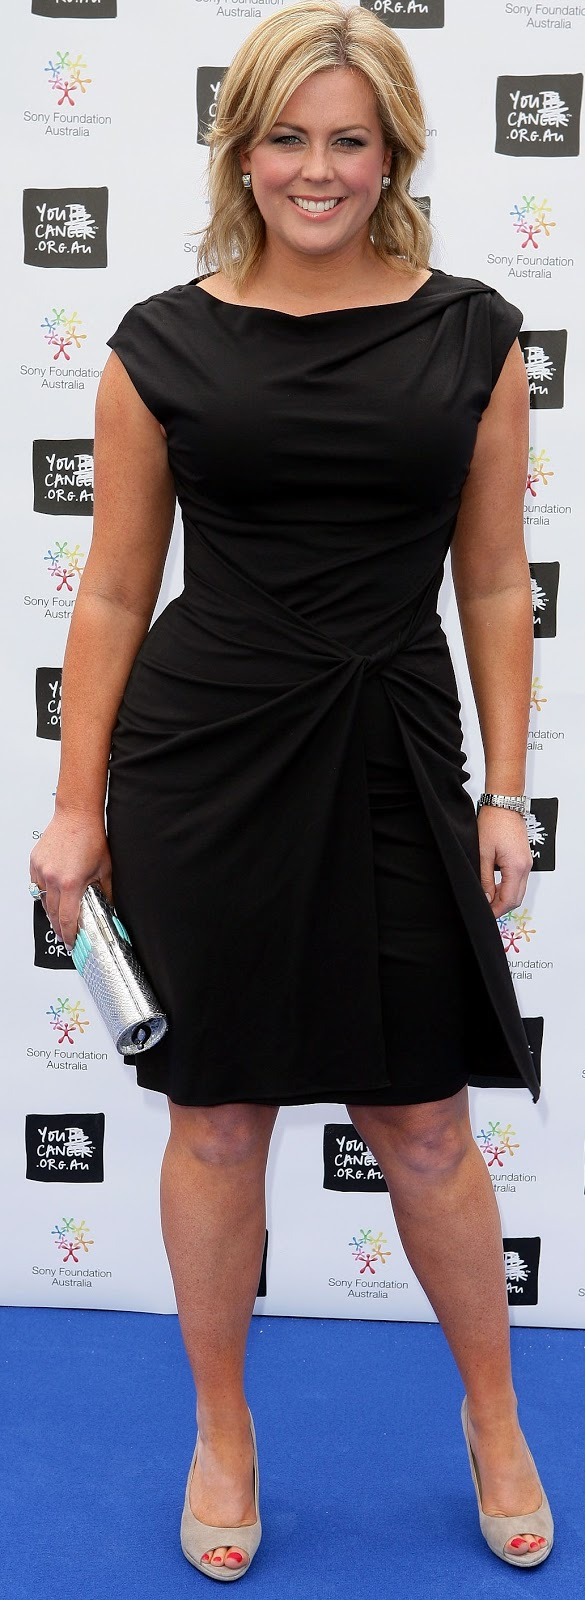 Its shaming me for being a size 12: Samantha Armytage